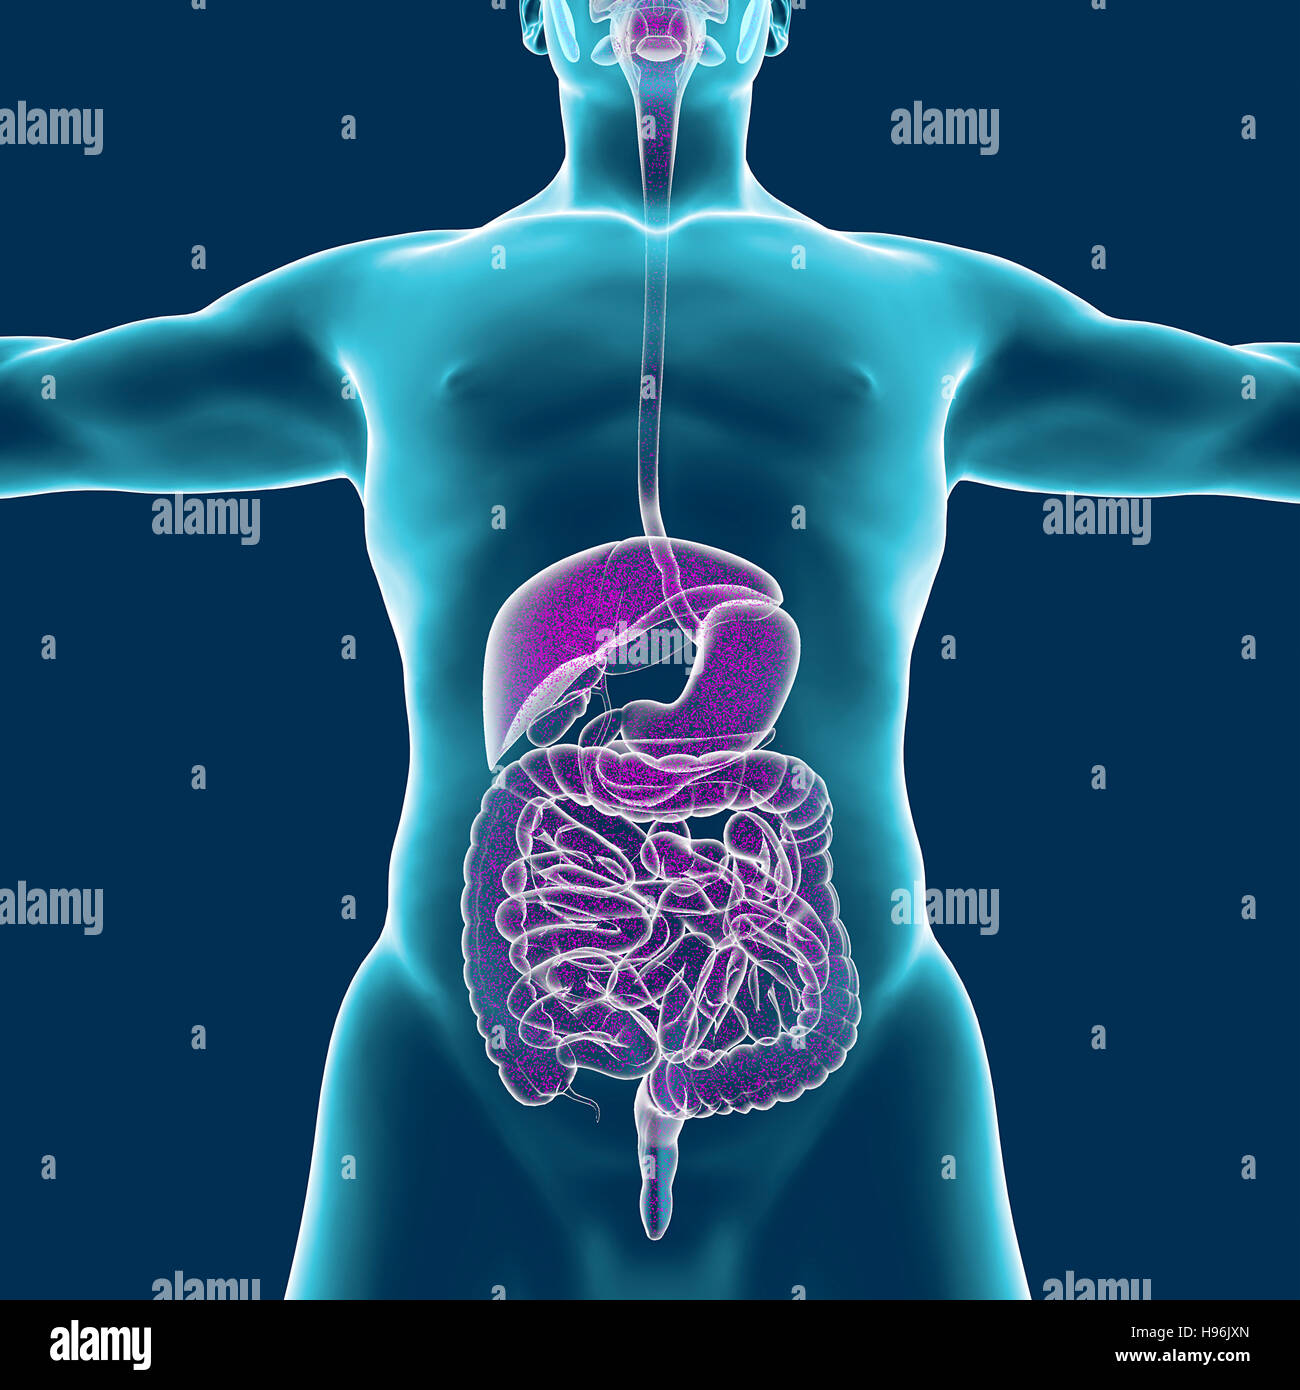 Human Body Muscular System Person Digestive System Anatomy 3d